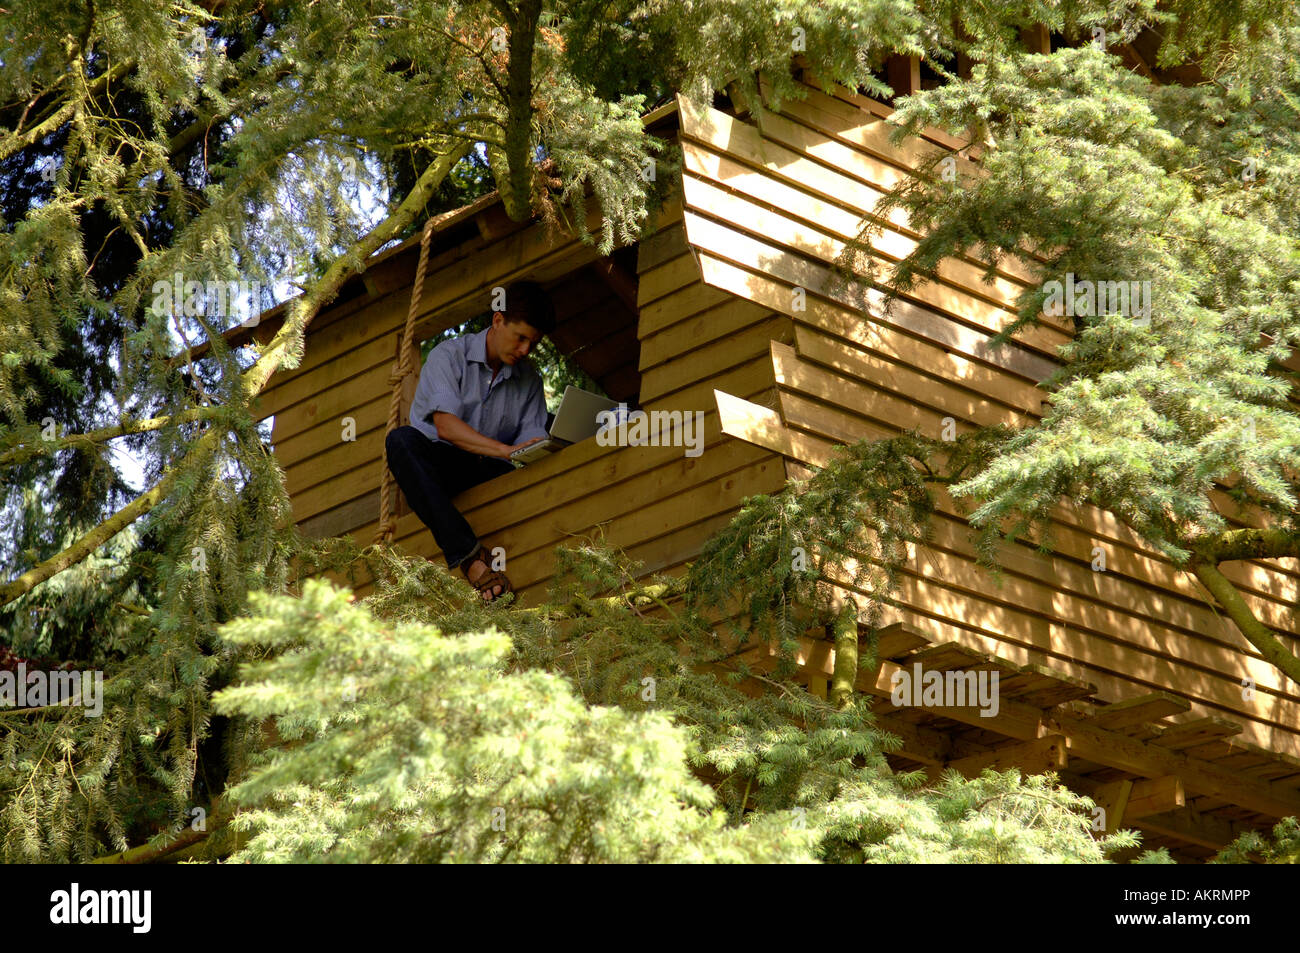 A man working from a tree house with his laptop - Stock Image